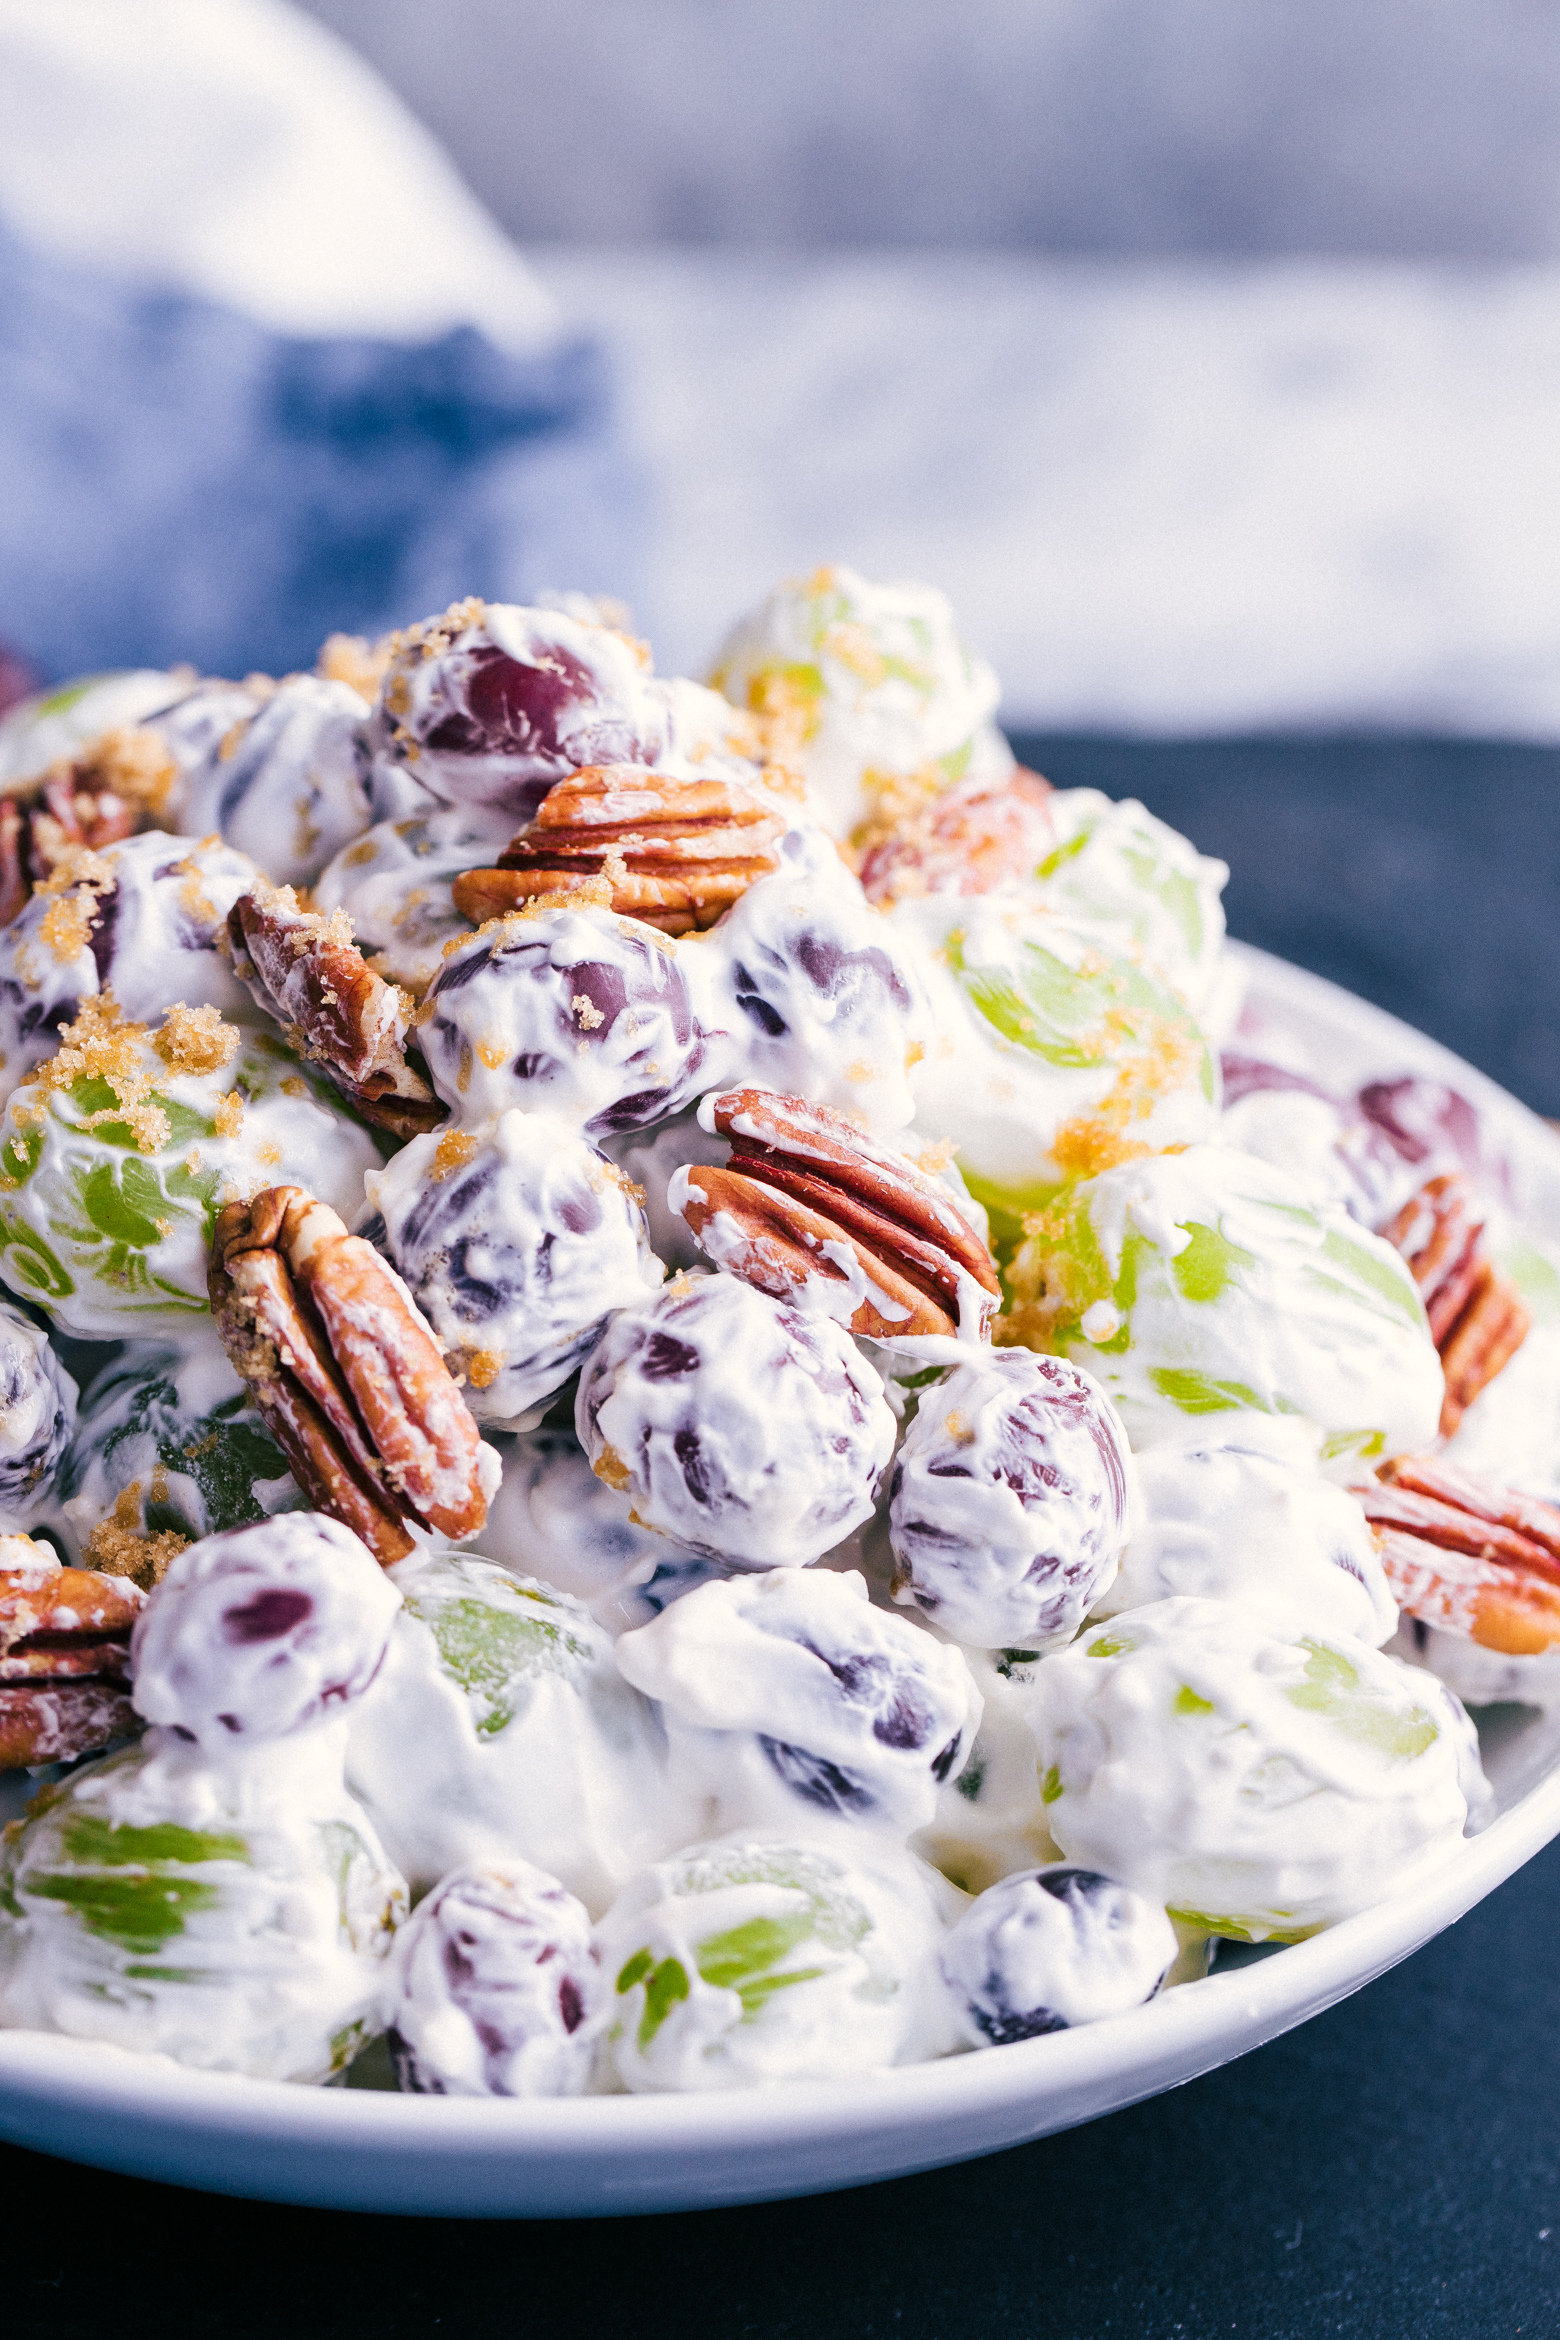 grape salad mixed in a creamy cool whip and cream cheese fluff served in a white bowl.